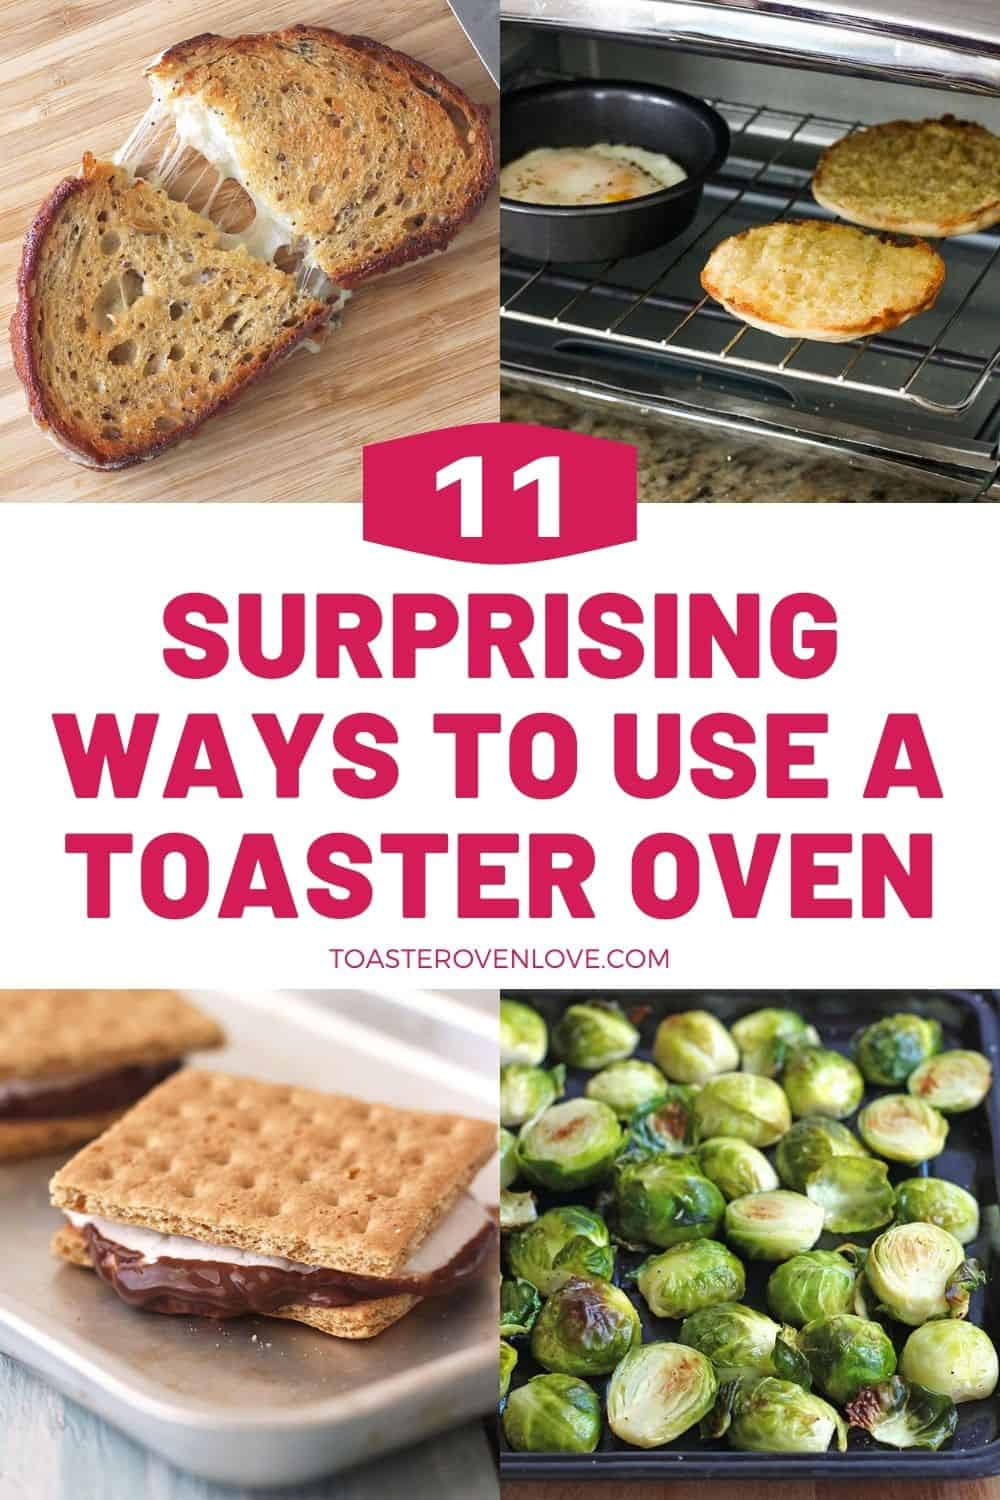 11 Surprising Ways to Use Your Toaster Oven